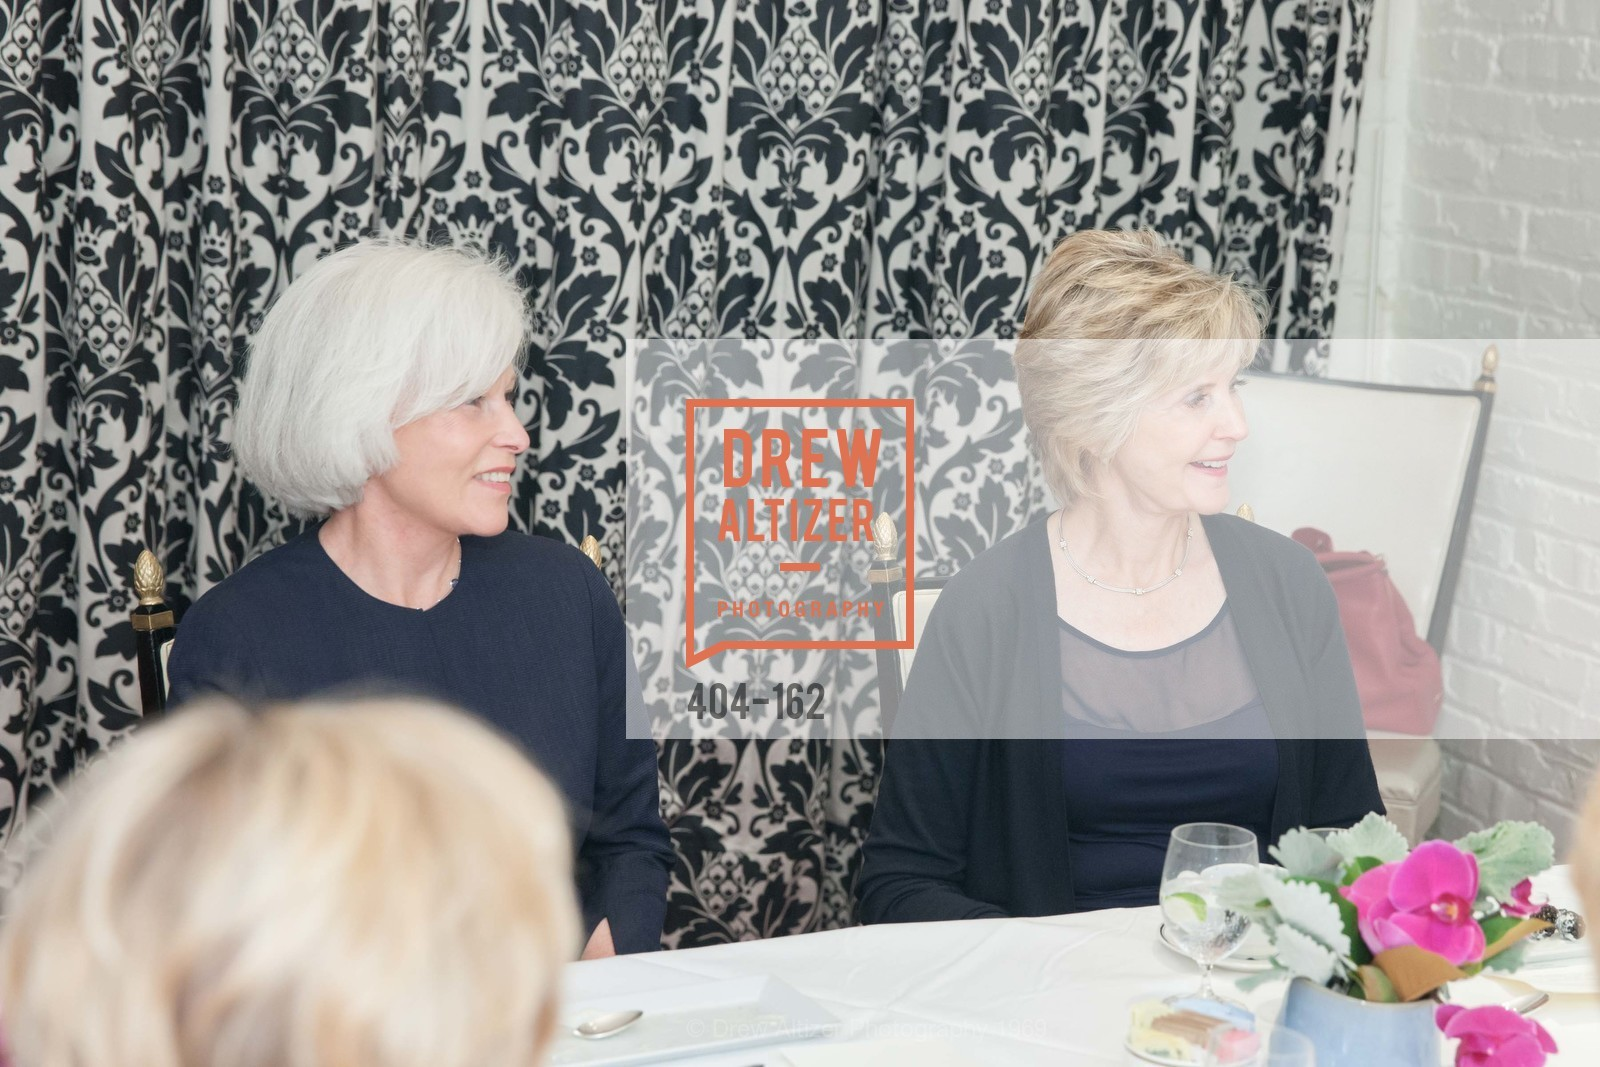 Mickie Anderson, Jo Eriko, National Museum of Women in the Arts Luncheon Hosted by Lorna Meyer Calas, Villa Taverna. 27 Hotaling Place, June 14th, 2015,Drew Altizer, Drew Altizer Photography, full-service agency, private events, San Francisco photographer, photographer california